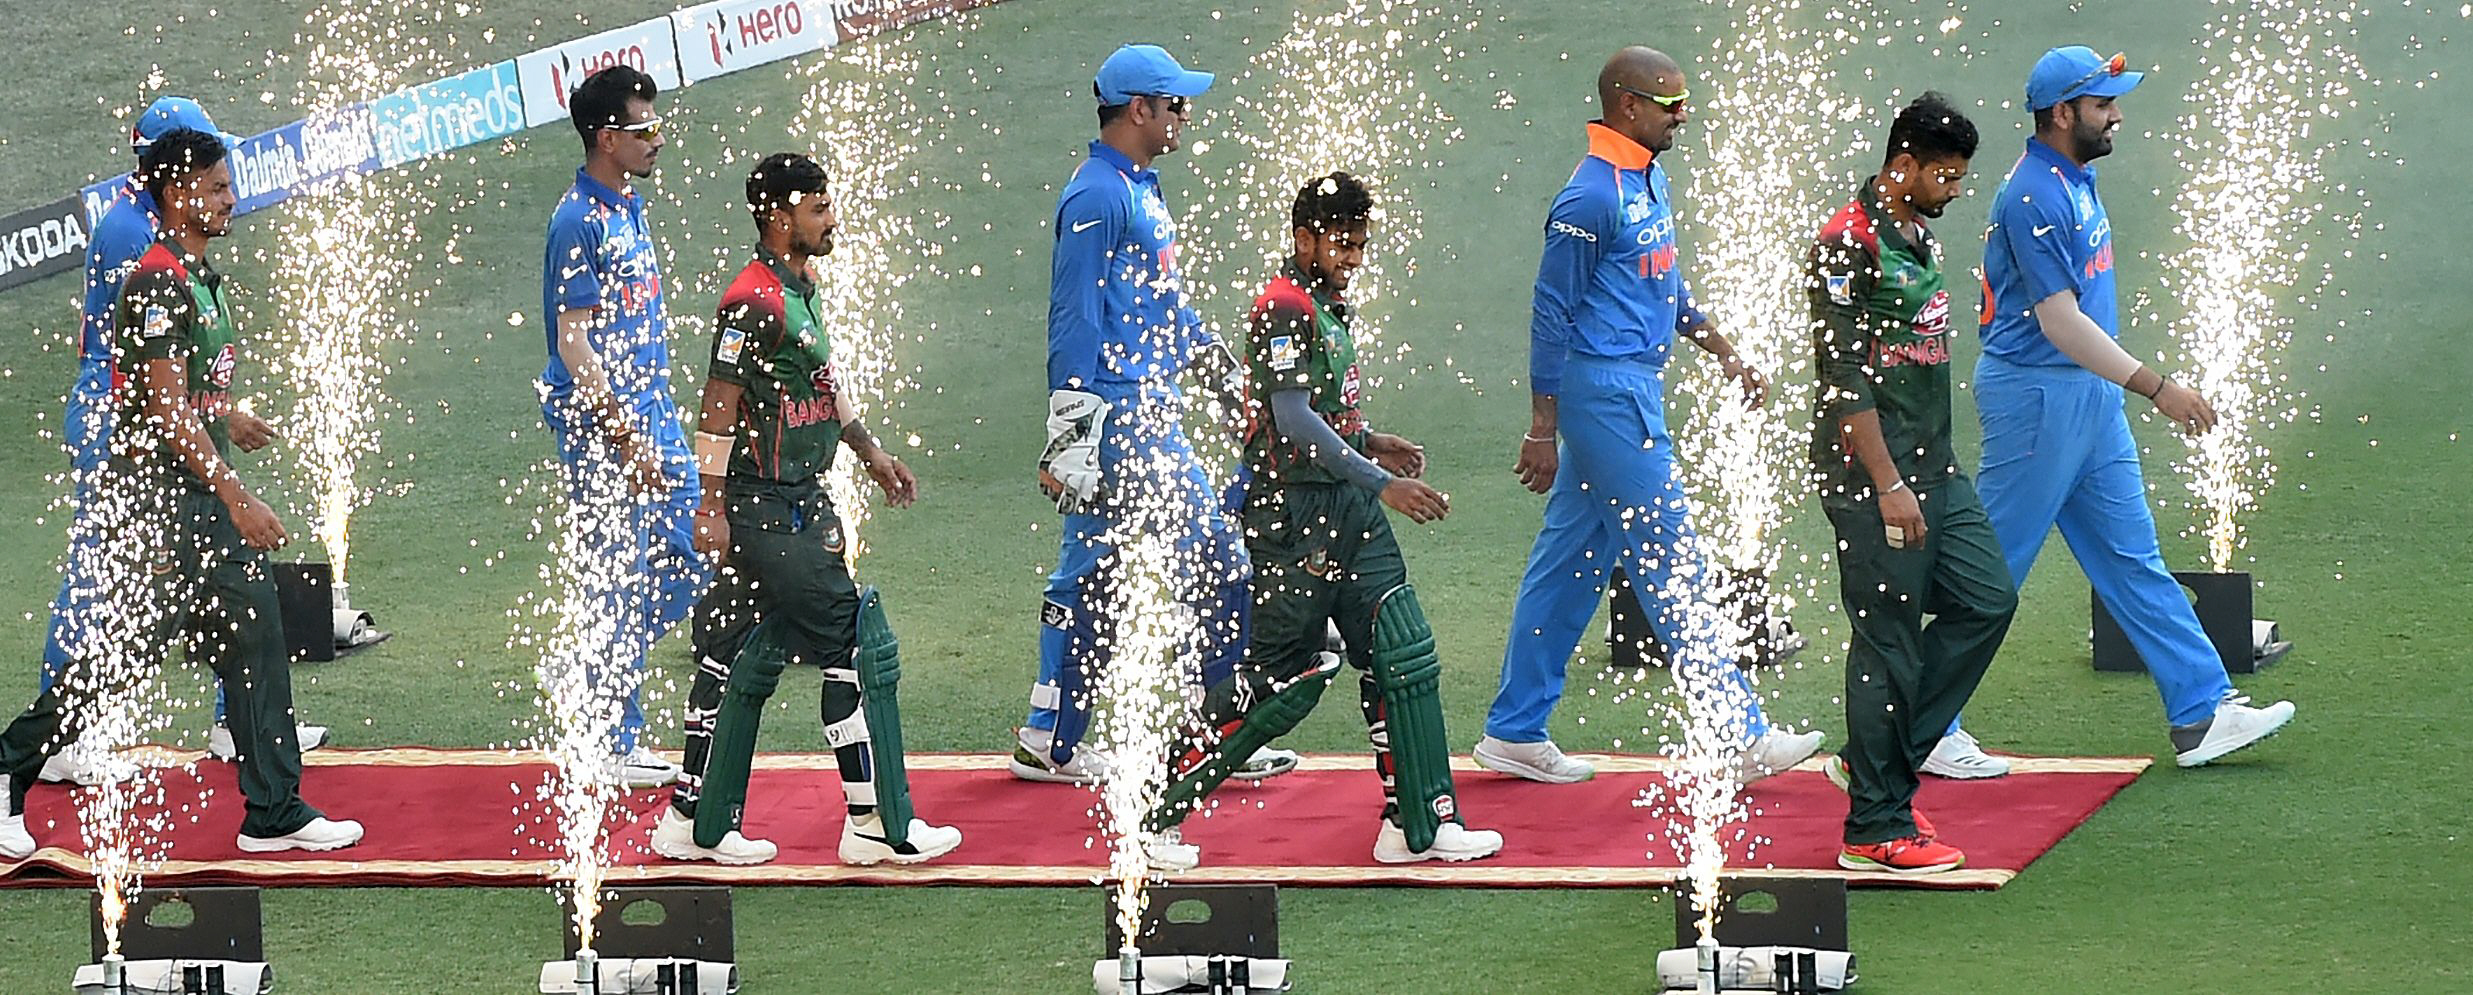 Indian cricket team captain Rohit Sharma (R), Bangladesh cricket captain Mashrafe Mortaza (2R) and teammates arrival during the final one day international (ODI) Asia Cup cricket match between Bangladesh and India at the Dubai International Cricket Stadiu